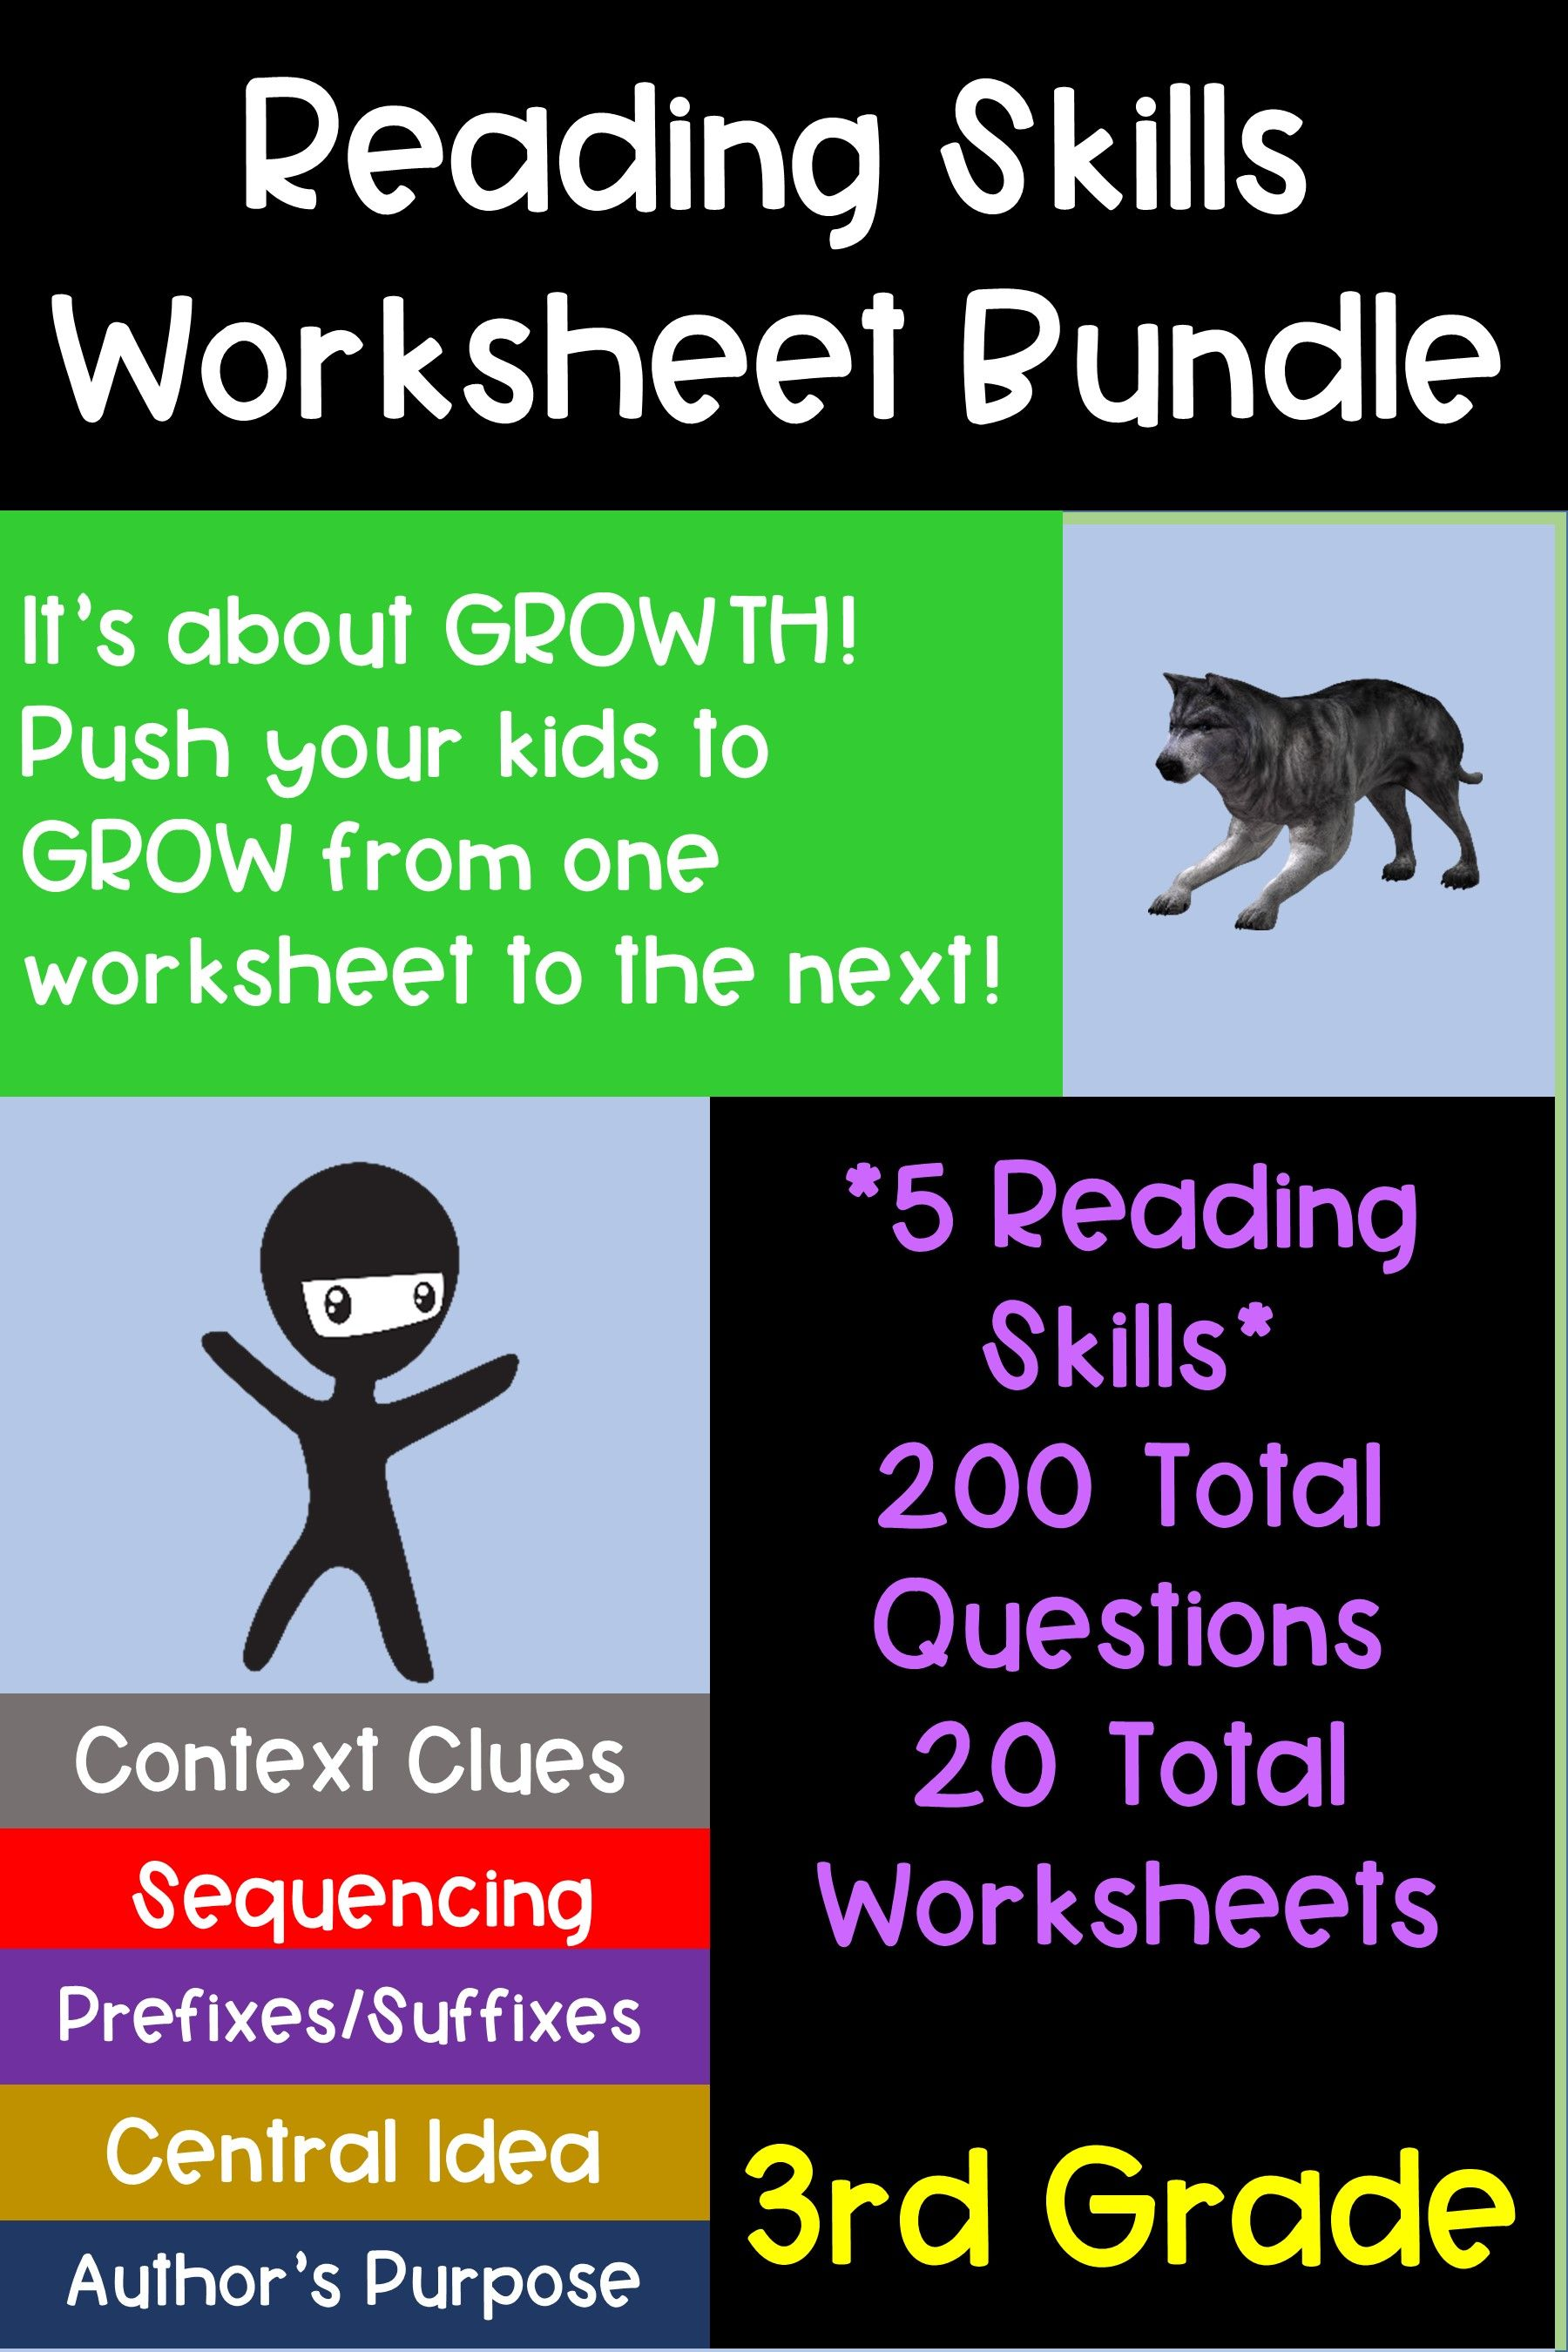 3rd Grade Reading Skill Worksheet Bundle